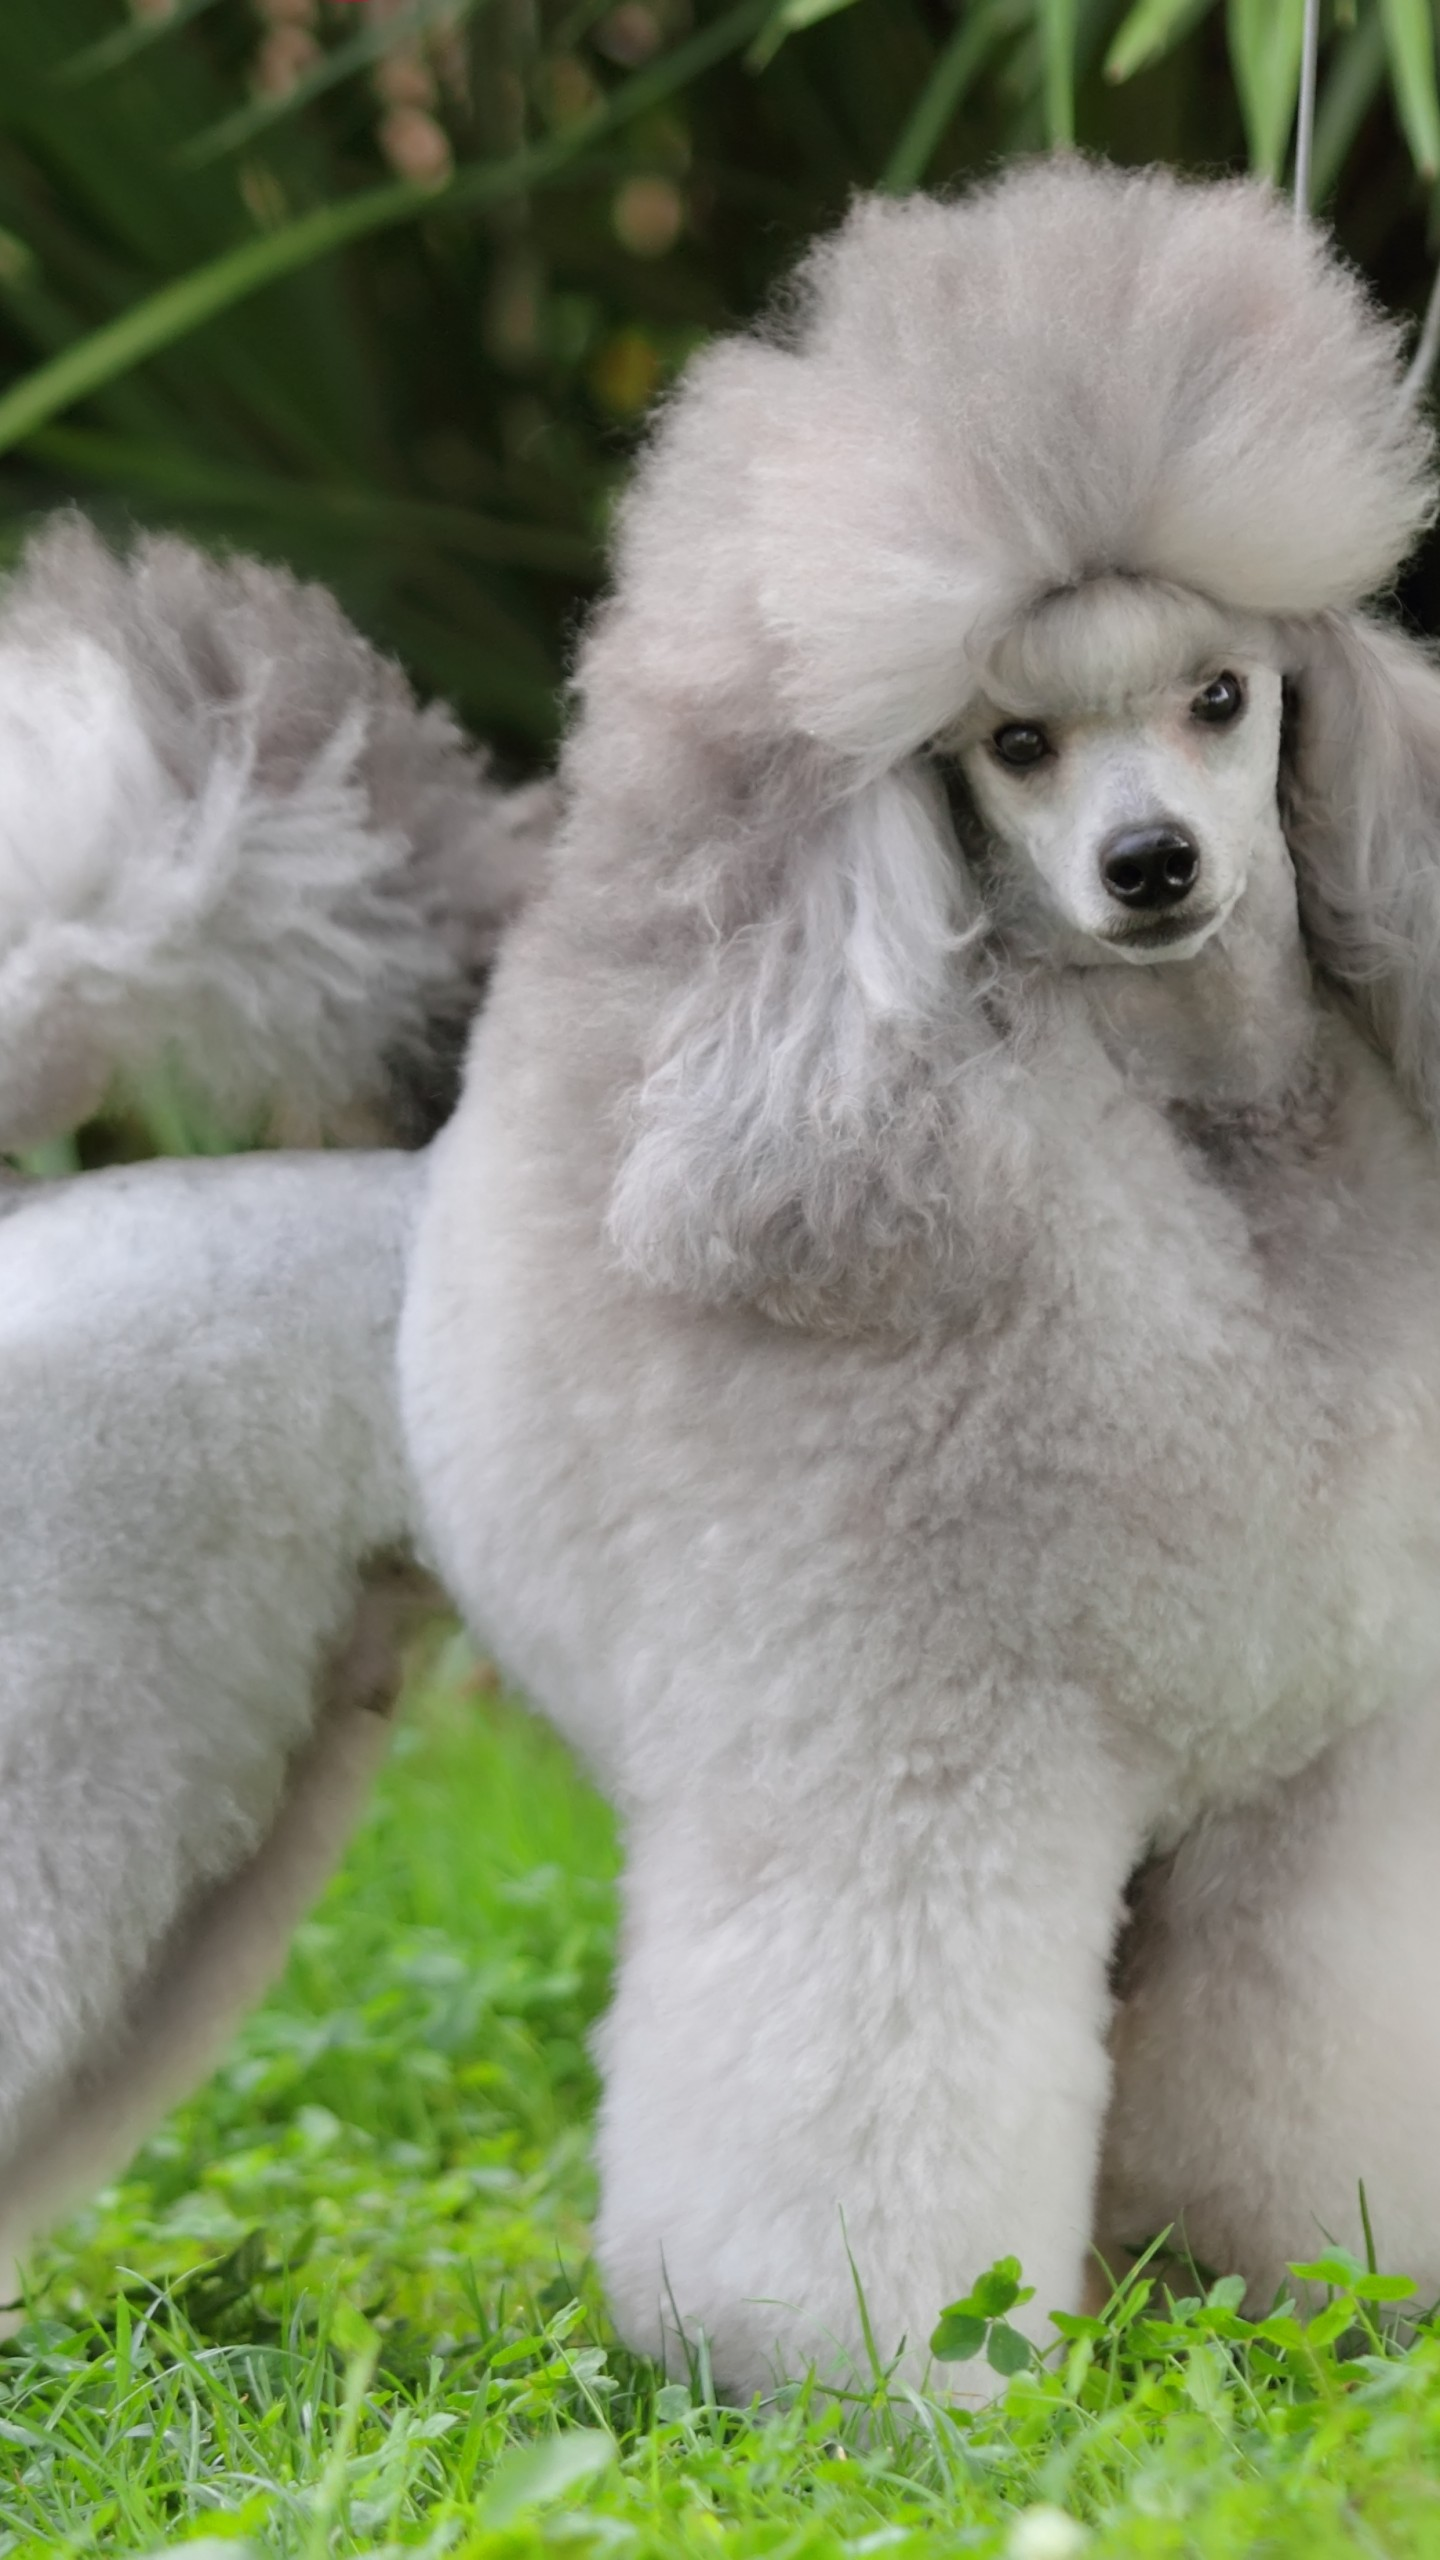 Wallpaper About Girls Wallpaper Poodle Grey Grass Cute Animals Animals 10144